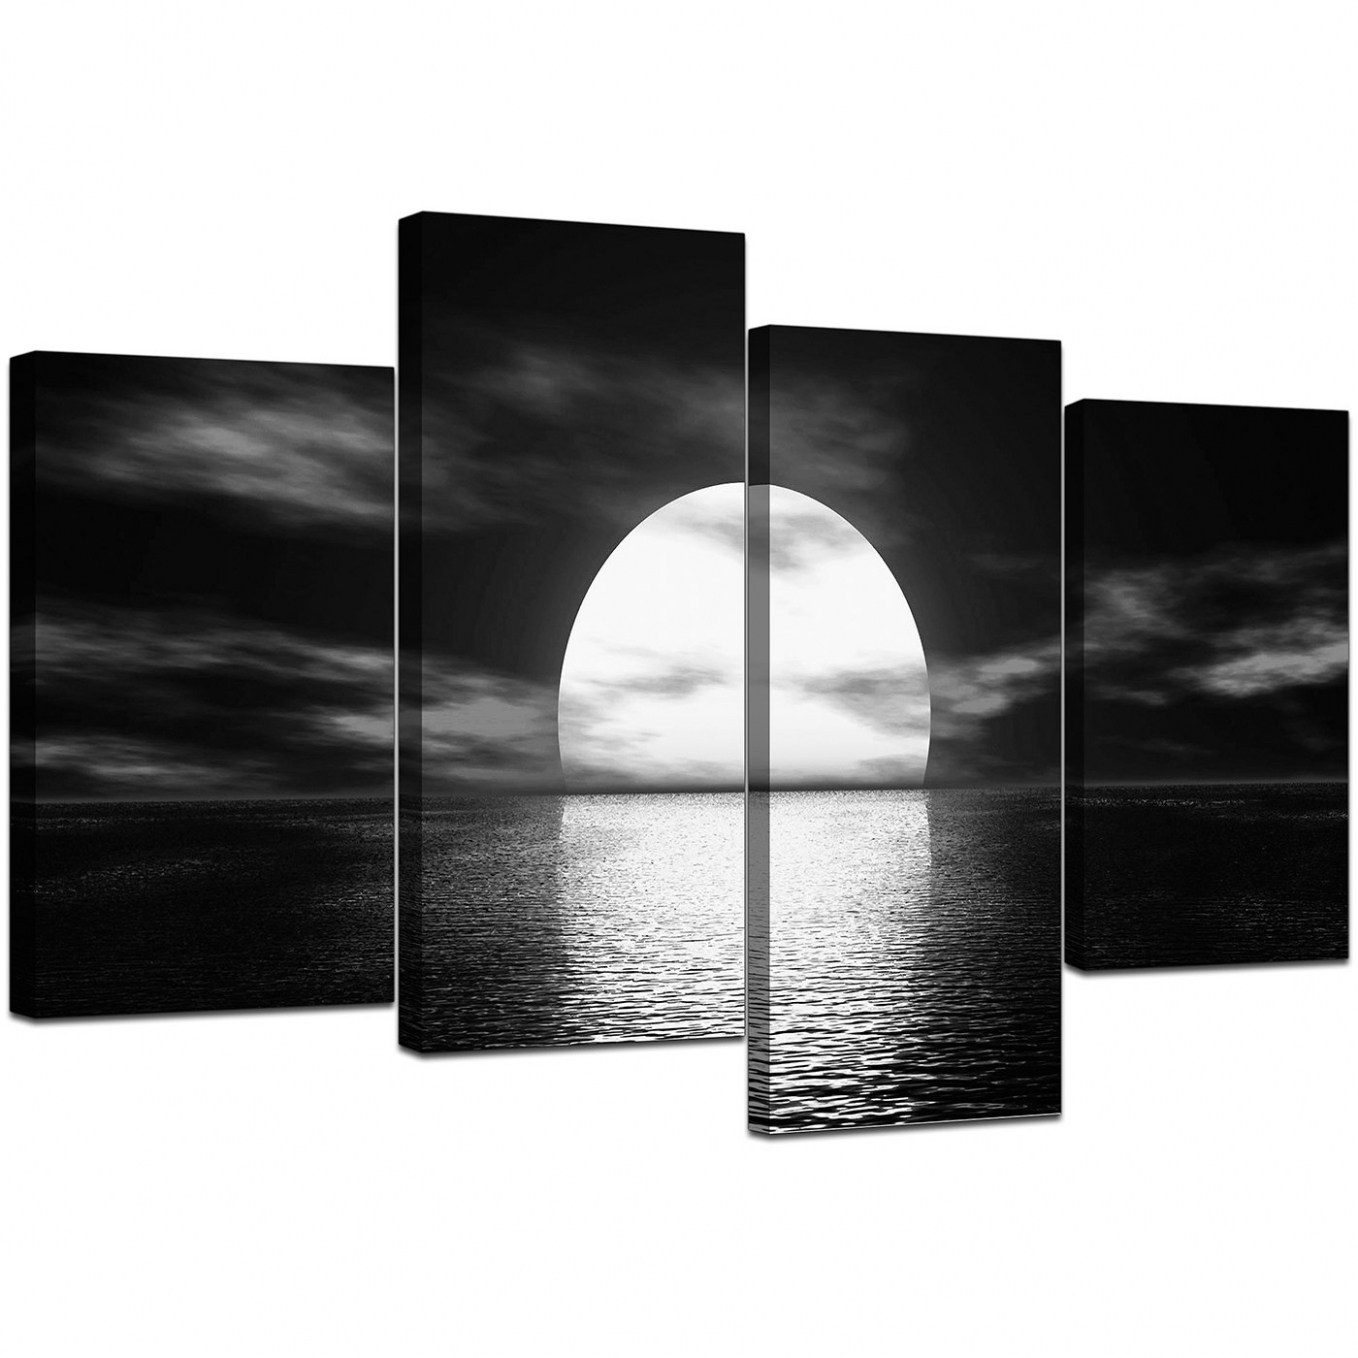 10 Best Ideas Of Black And White Large Canvas Wall Art within Most Current Photography Canvas Wall Art